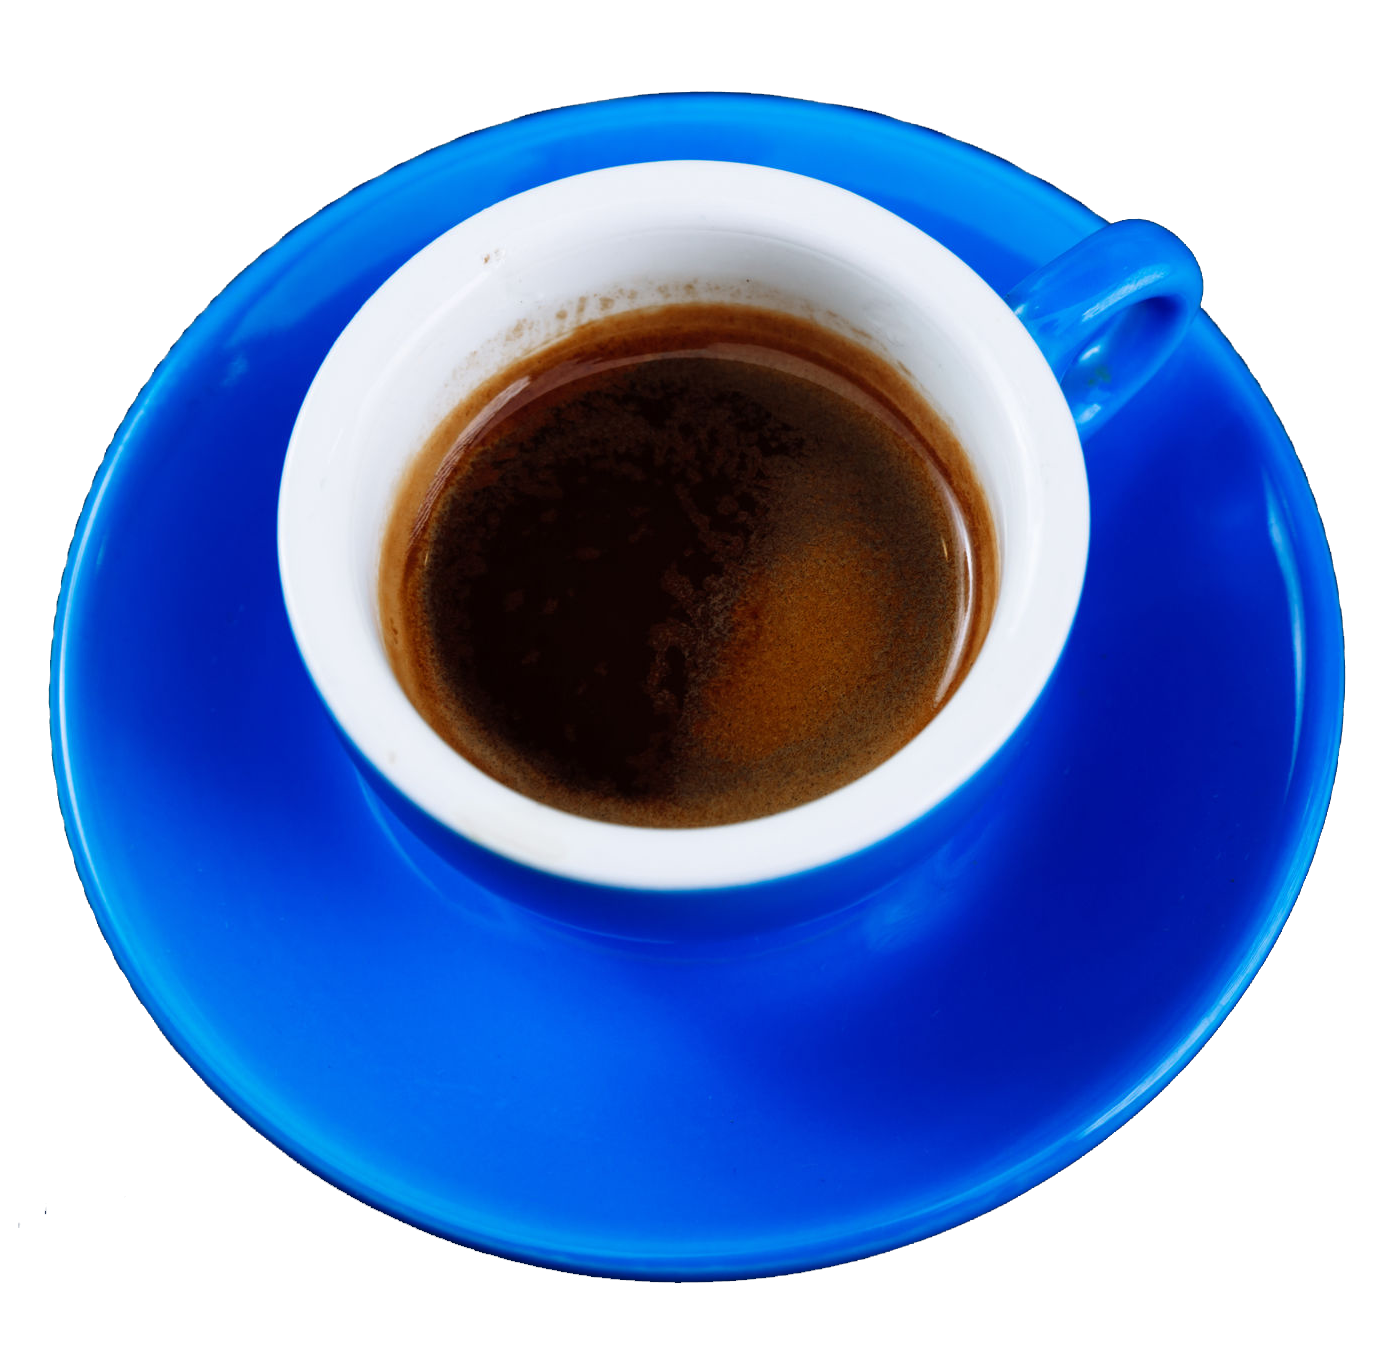 Blue cup of coffee in a saucer